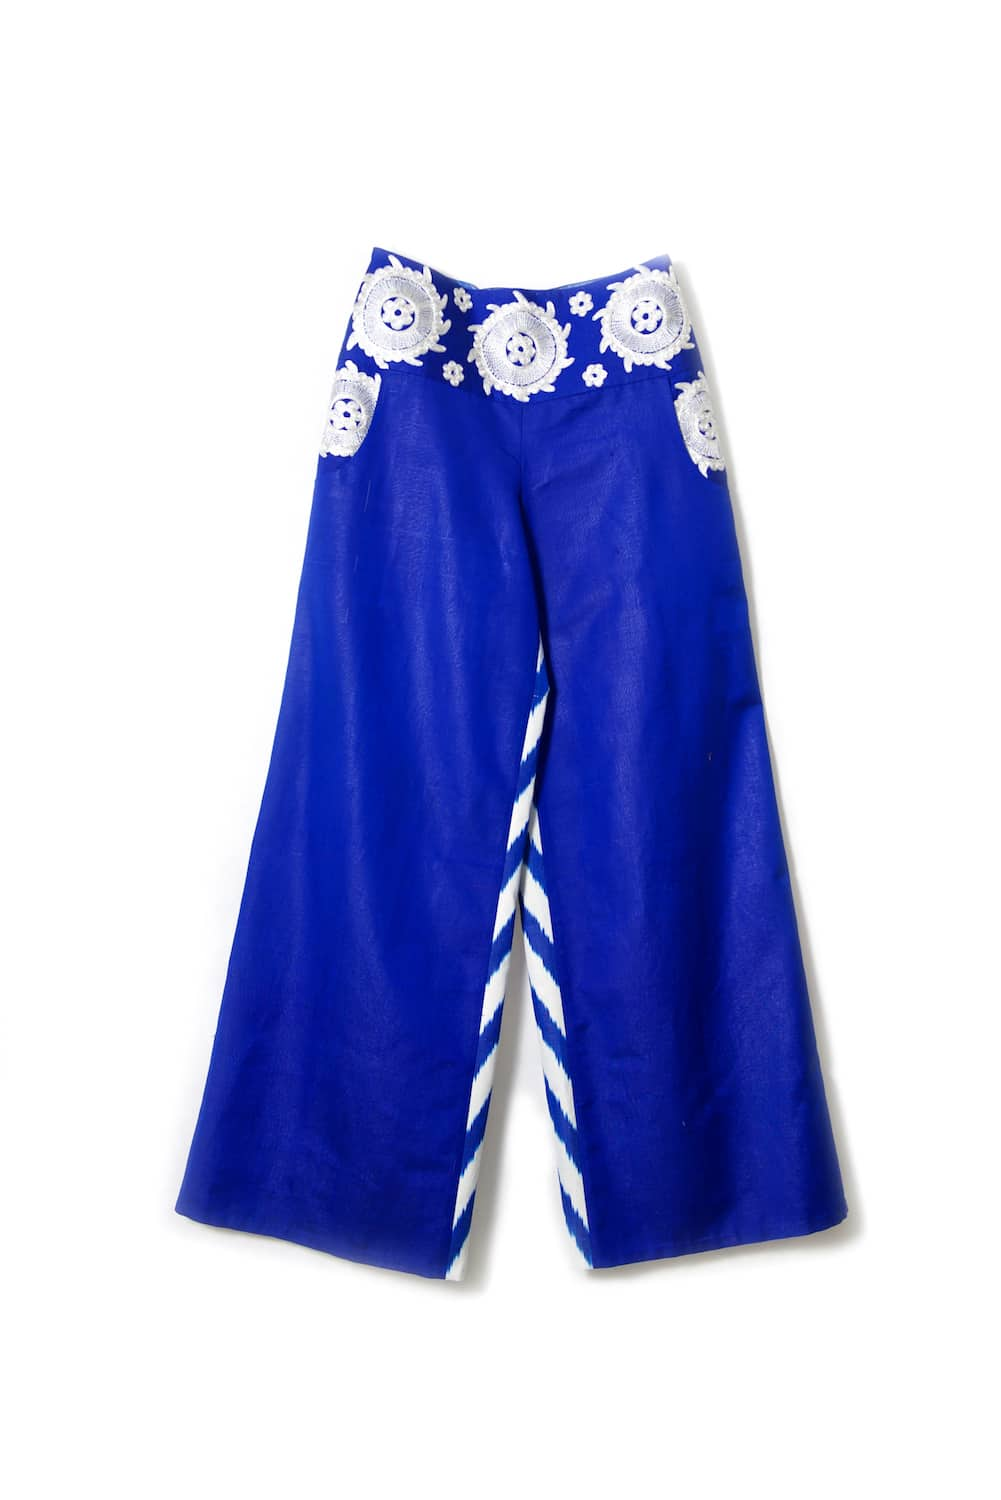 Ikat Pants with Embroidery